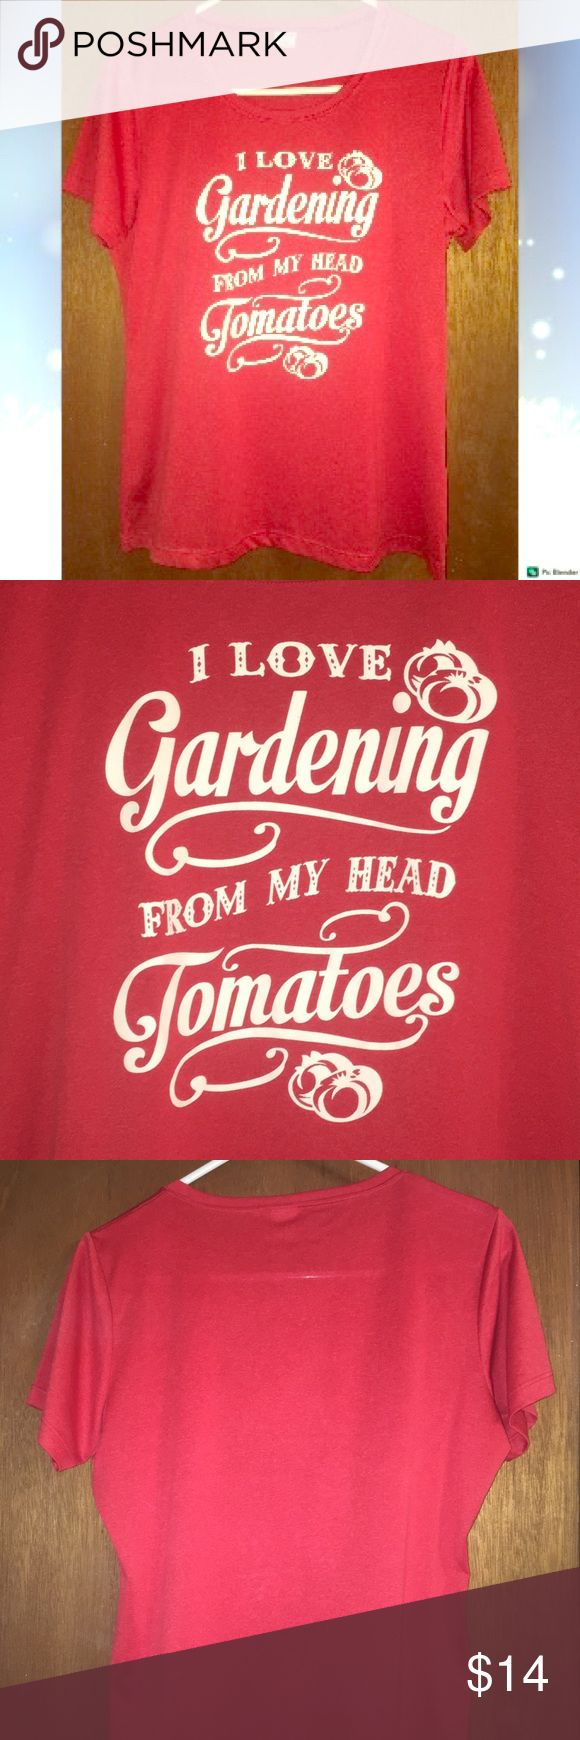 SportTek Red Gardening Garden Silky Dry Fit Tee Sport-Tek!  ❣️Custom design Shirt! ❣️Cute script and raised design  ❣️Perfect gift for your gardening friends and family! ❣️Fun play on words! 🌹Comment with any questions! Thanks for viewing!  👋😘 Sport-Tek Tops Tees - Short Sleeve